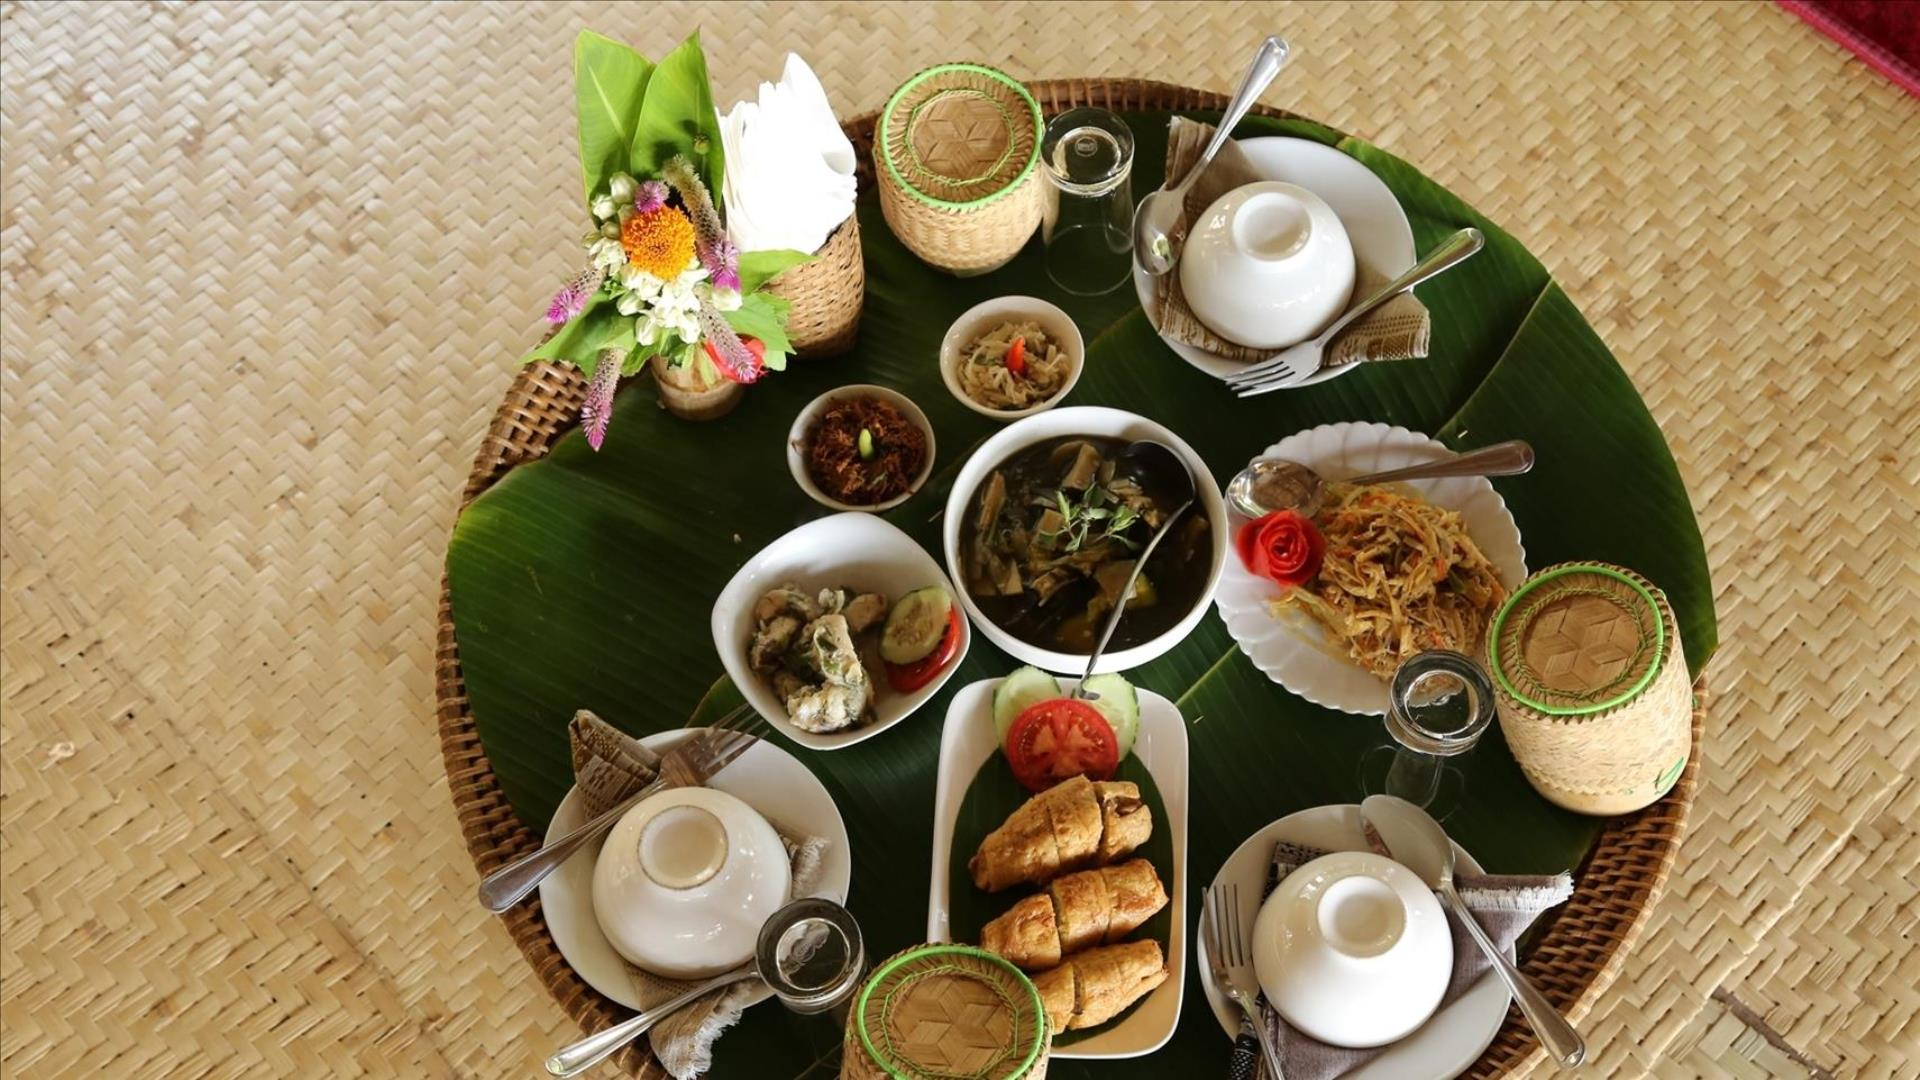 Laos, Luang Prabang : Bamboo Experience & Cooking class - Half-Day | The most fun cultural exerience you will have in Luang Prabang